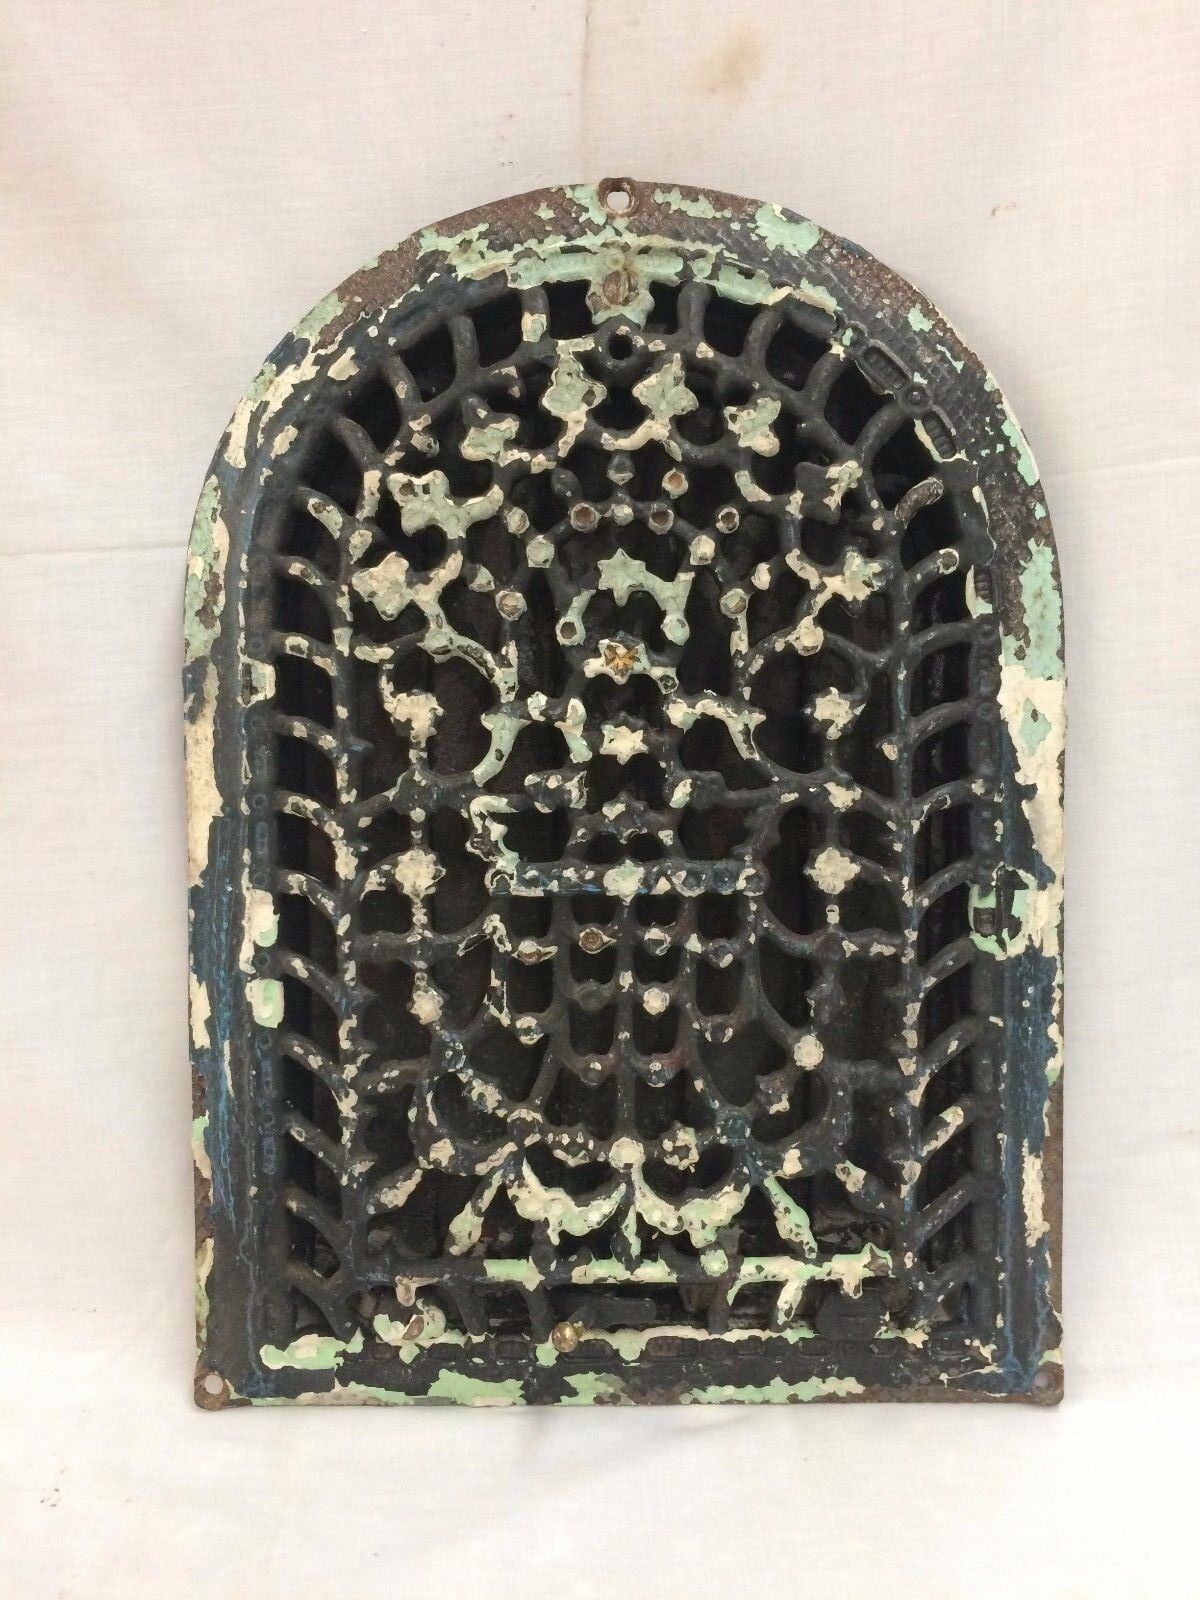 Antique Cast Iron Arch Top Dome Heat Grate Wall Register Black 2069-16